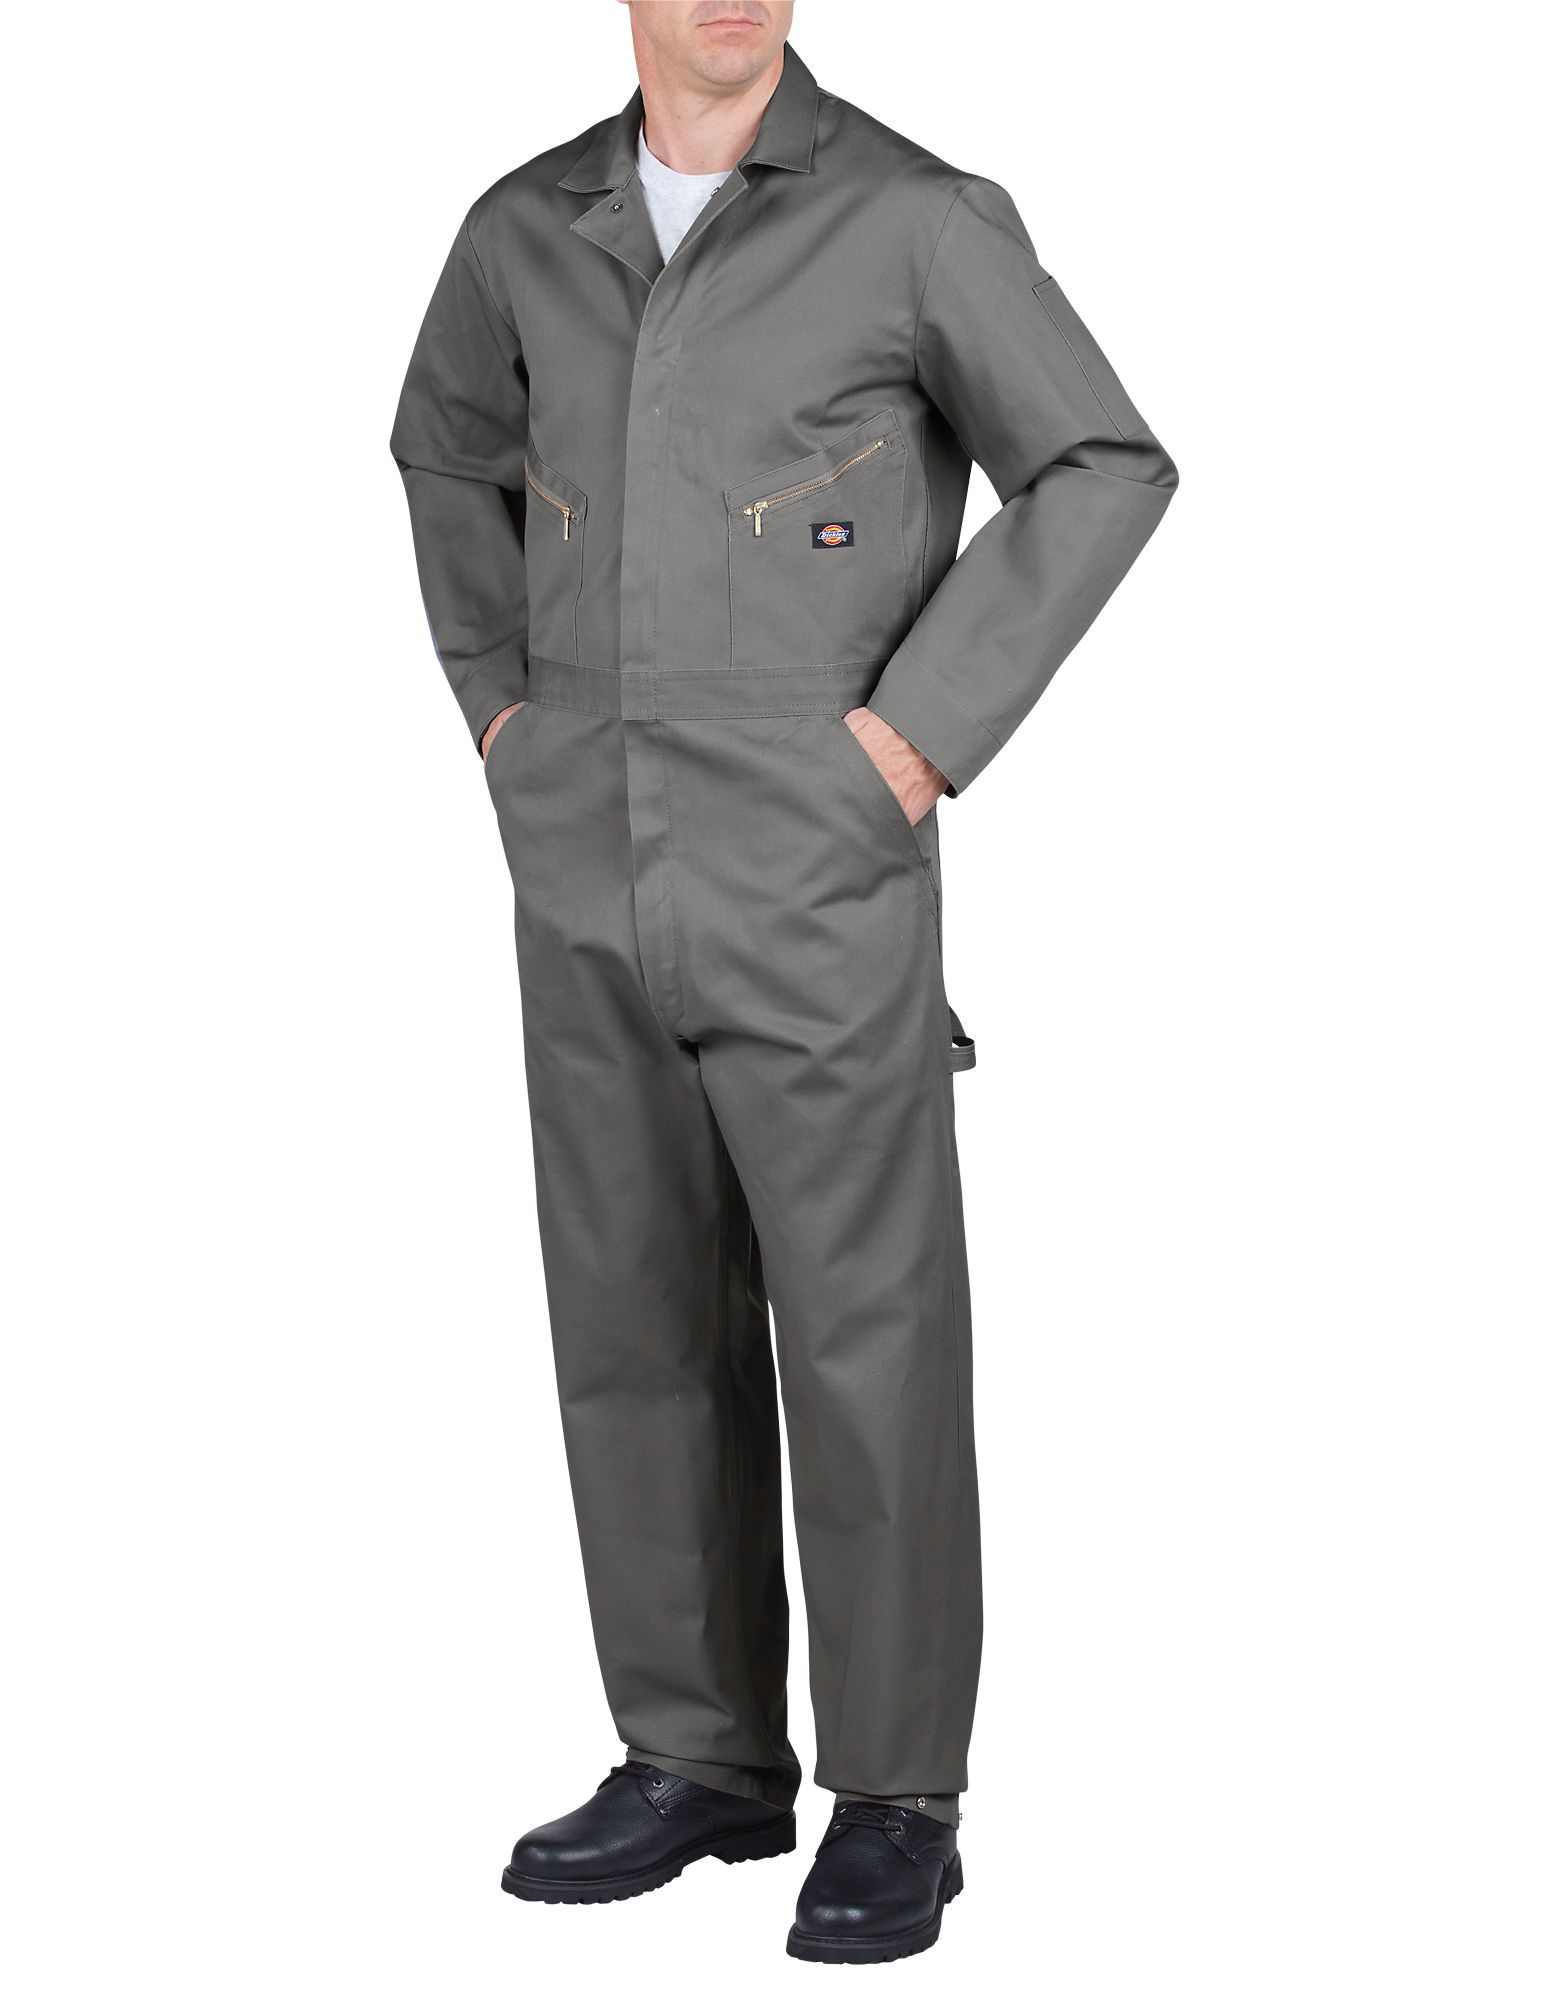 f47f41a1f9bbe Deluxe Cotton Long Sleeve Coveralls, Gray in 2019 | Beekeeping ...